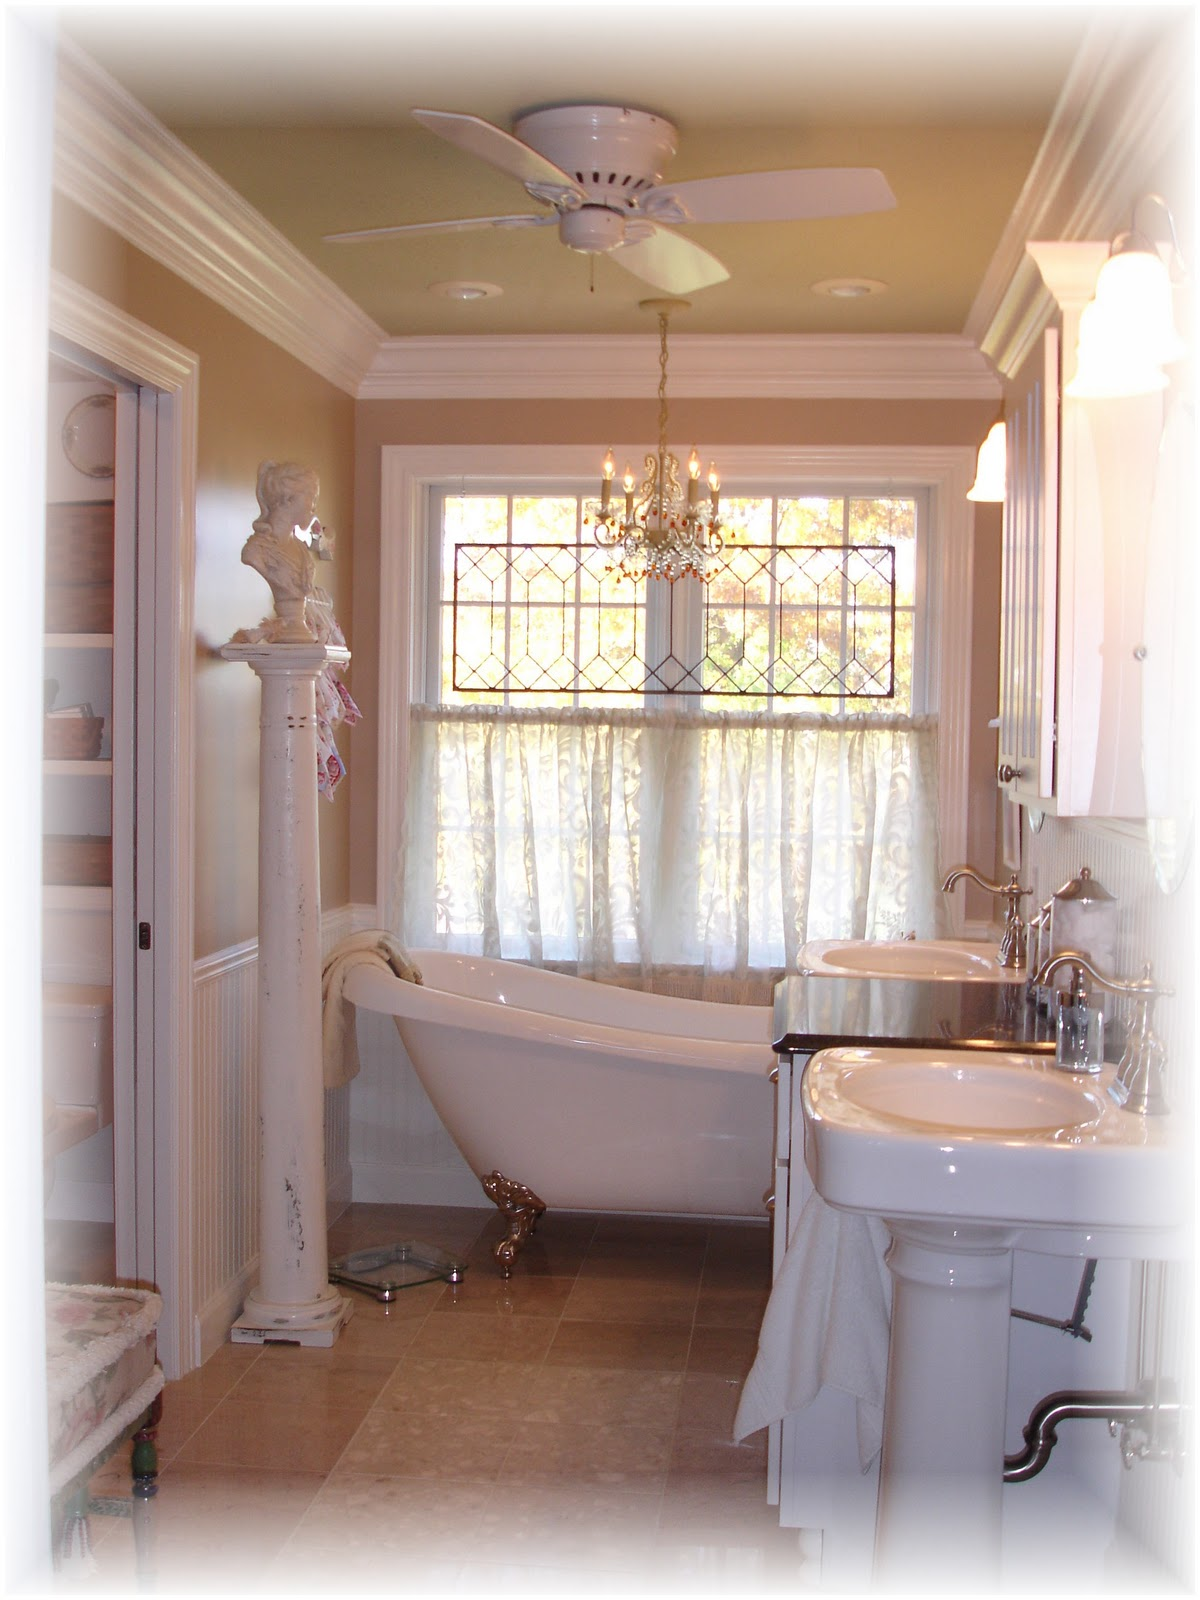 Simple Considerations You Wont Regret Before Redoing A